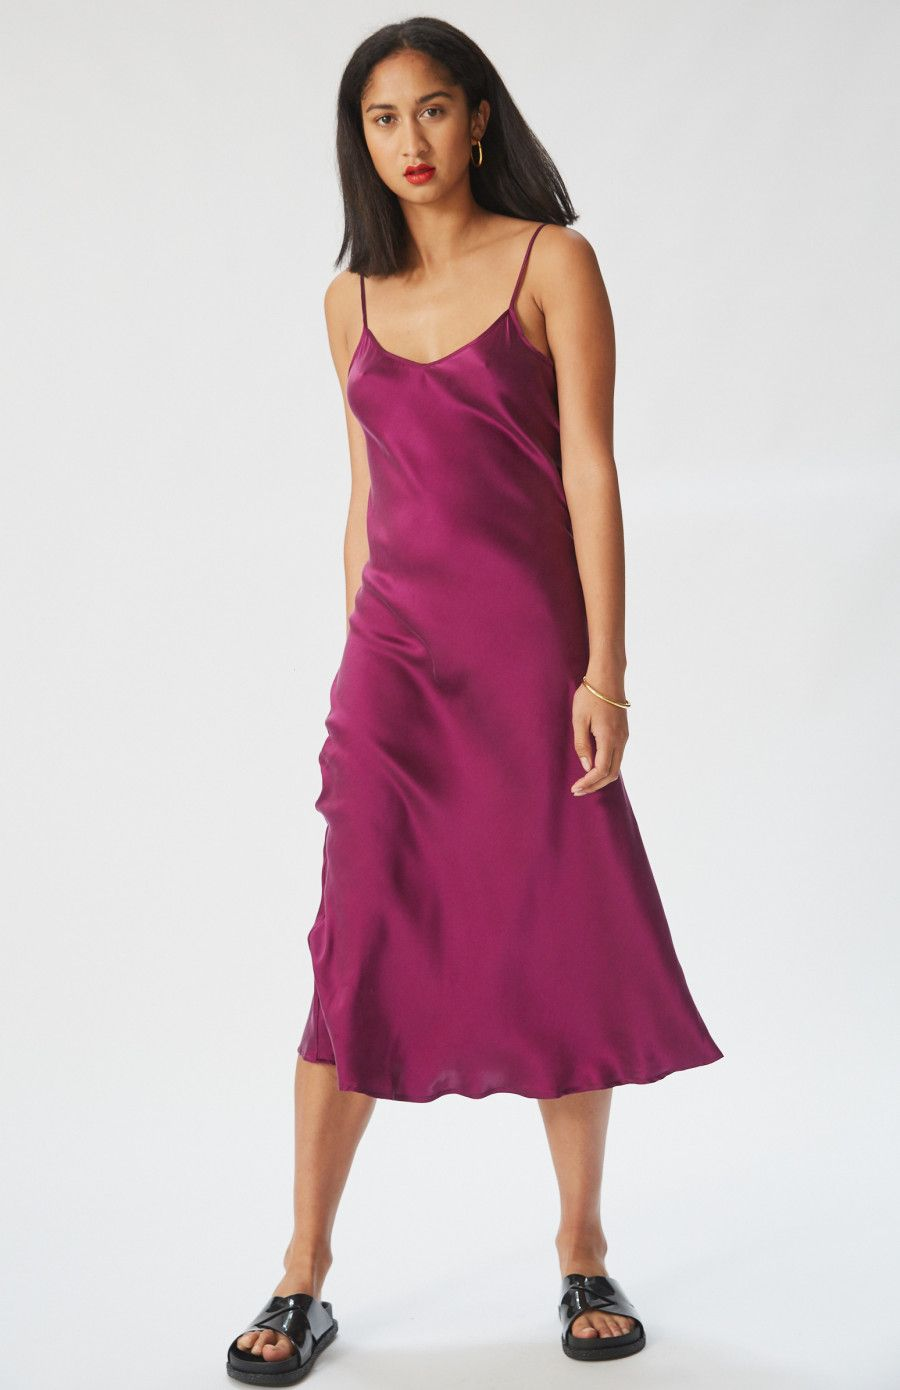 94b6c8698d0c '90s Silk Slip Dress in Purple by Silk Laundry, ethically-made in a  transparent supply chain, and the perfect special event dress and spring  dress.